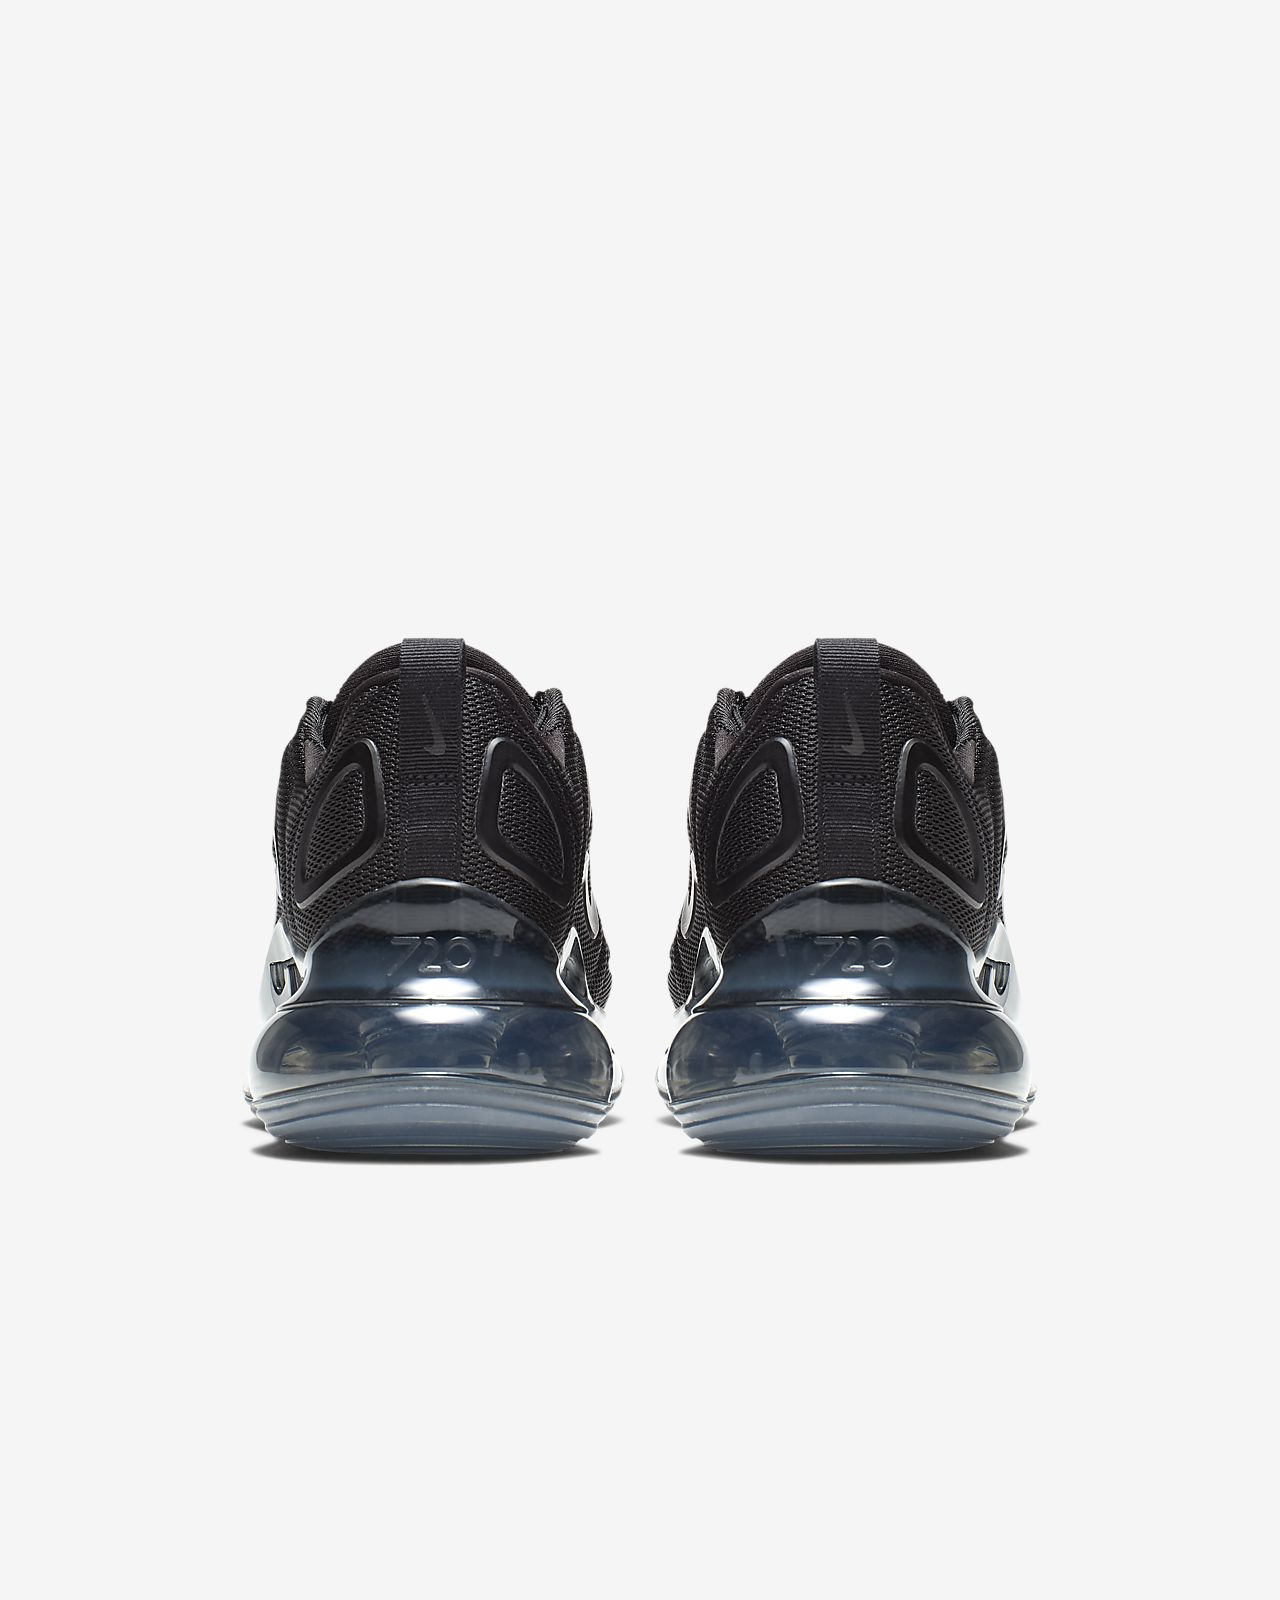 Details about Nike air max 720 Women's Sneaker AR9293 006 Black Shoes Trainers Sport Shoes